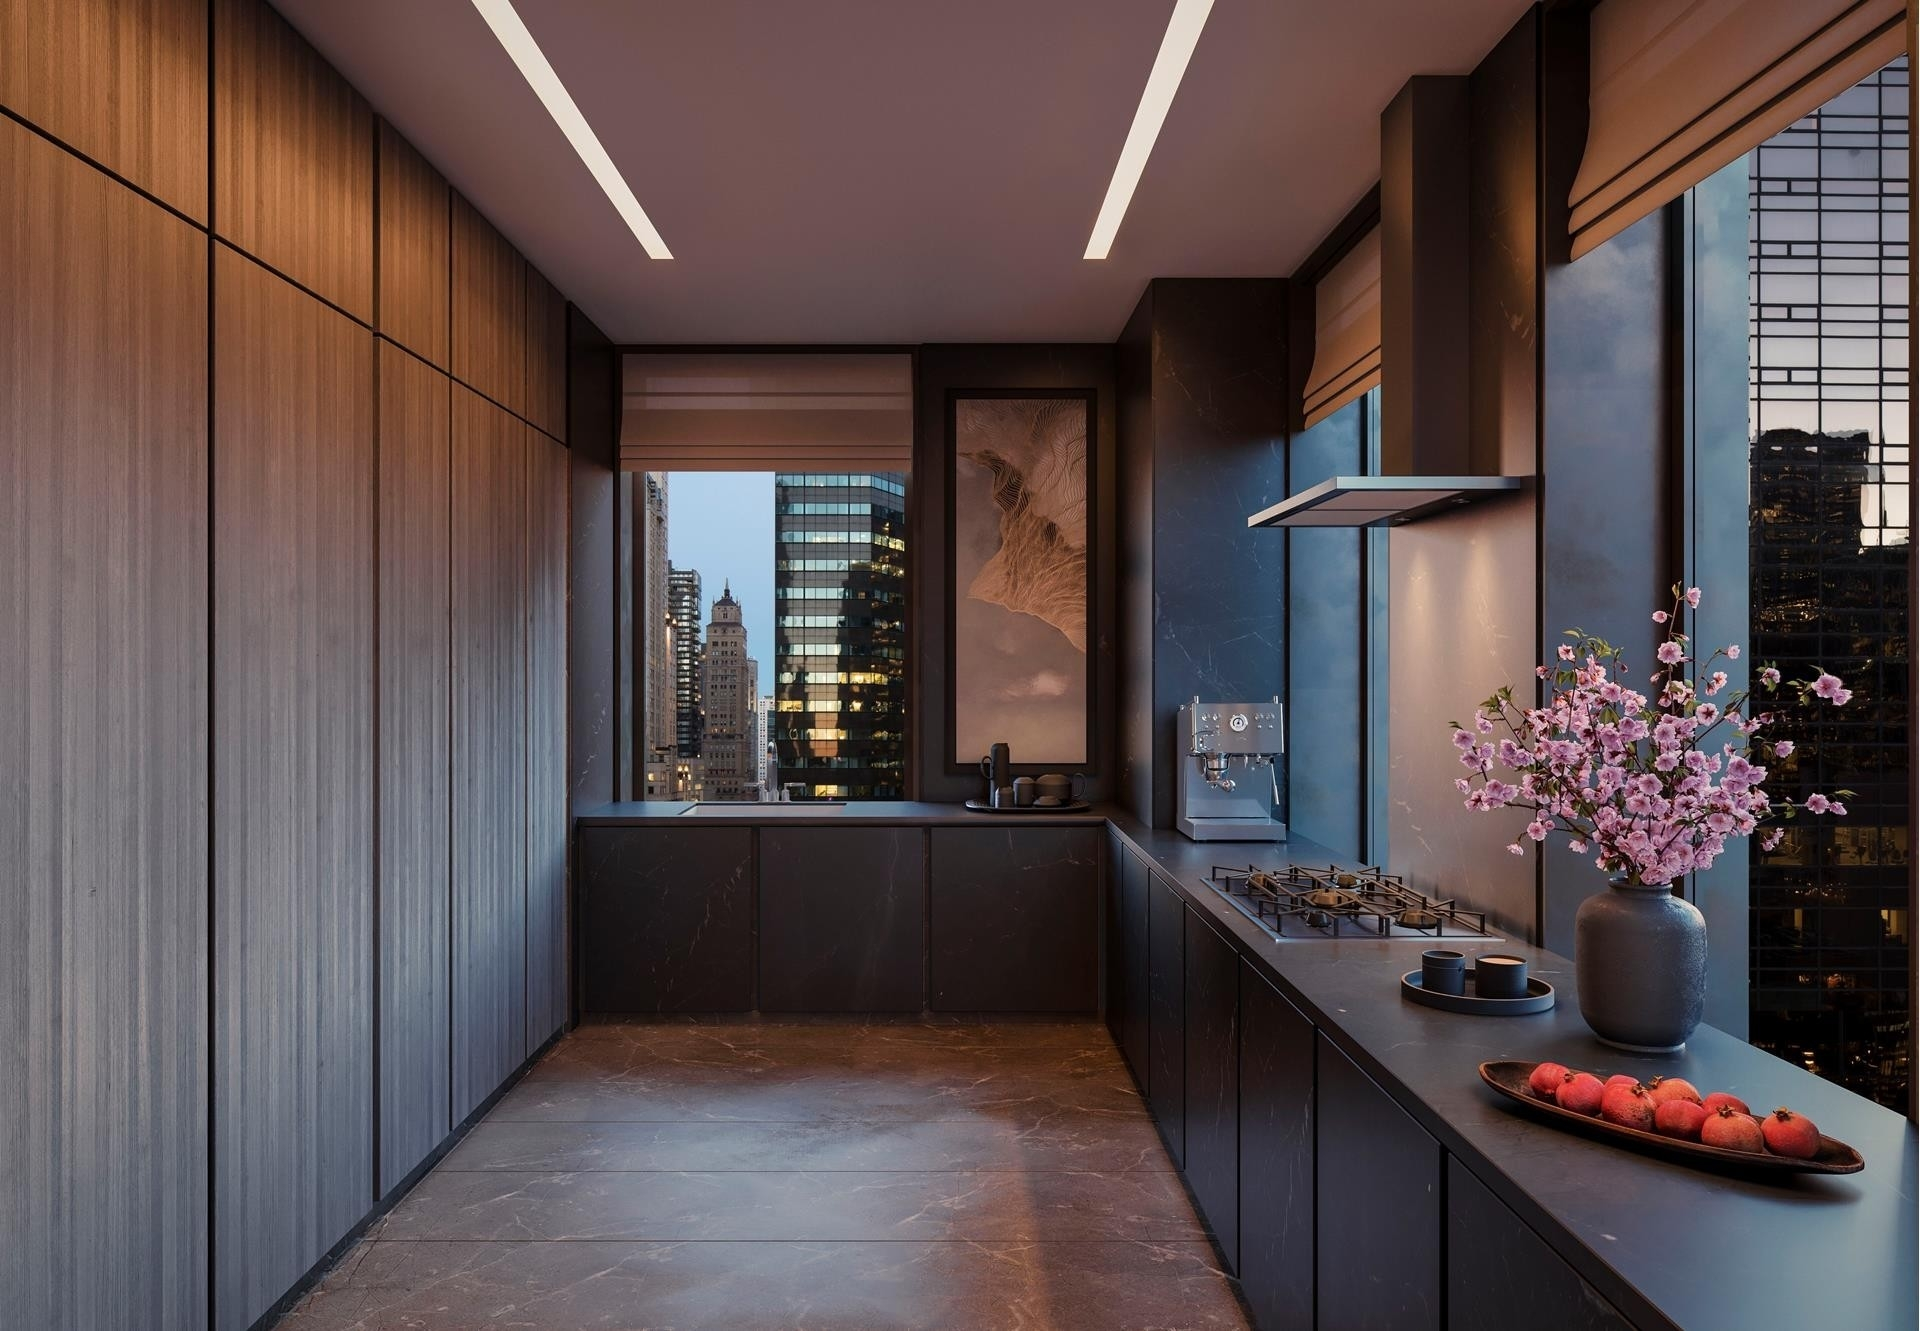 Property à Aman NY Residences, 730 FIFTH AVE , 18D Midtown West, New York, NY 10019